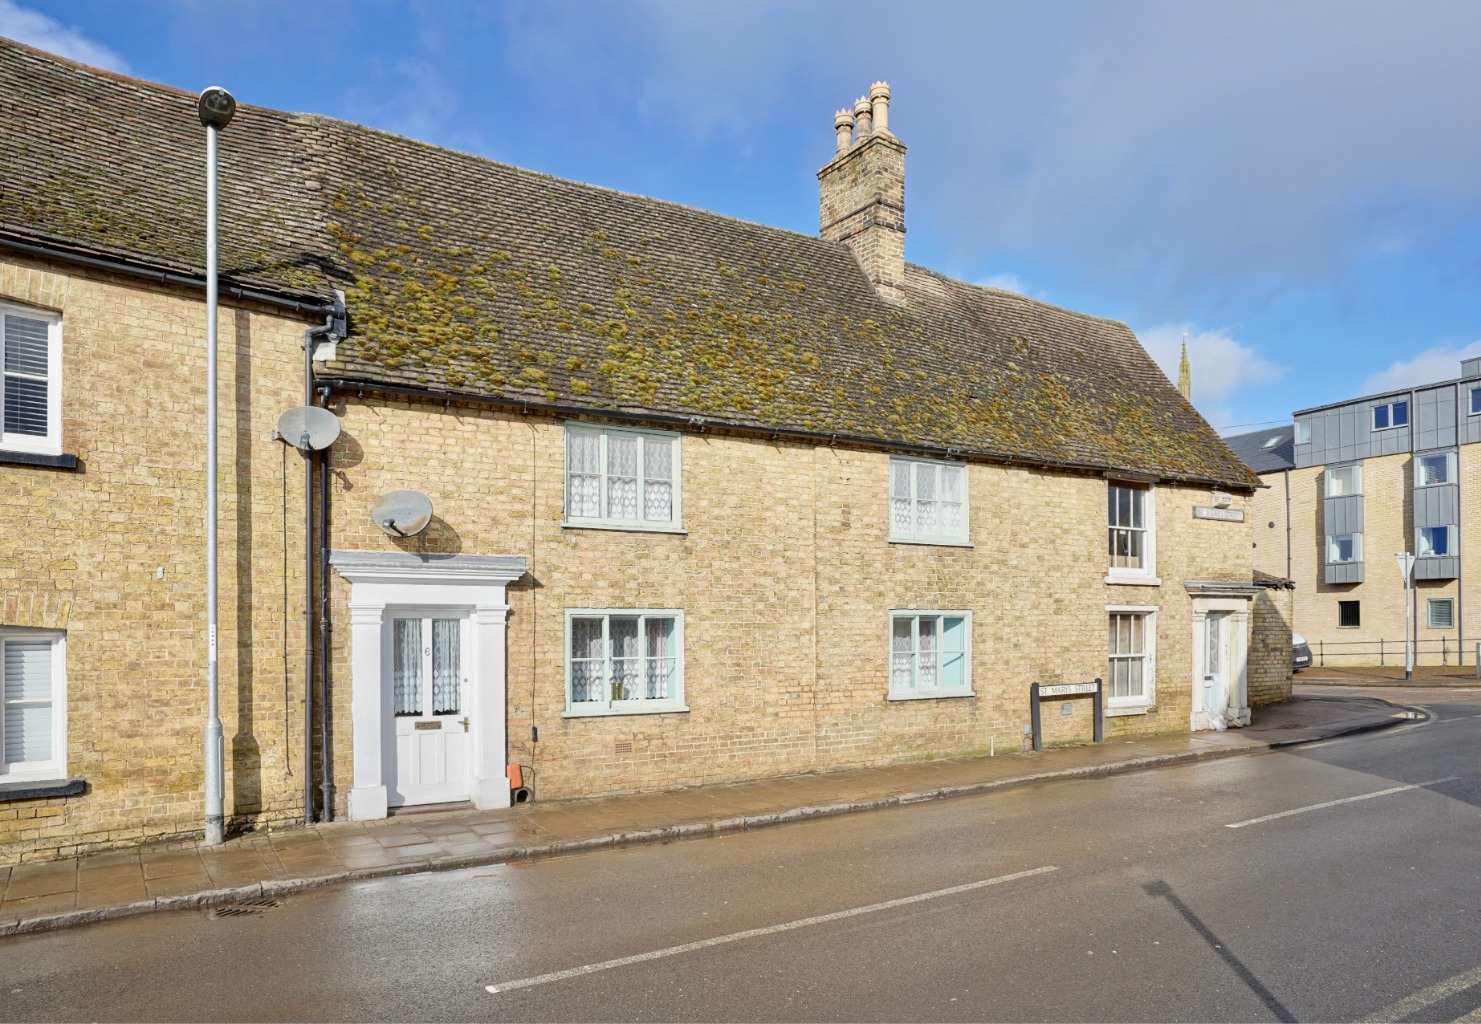 2 bed terraced house for sale in St. Marys Street, St. Neots  - Property Image 1